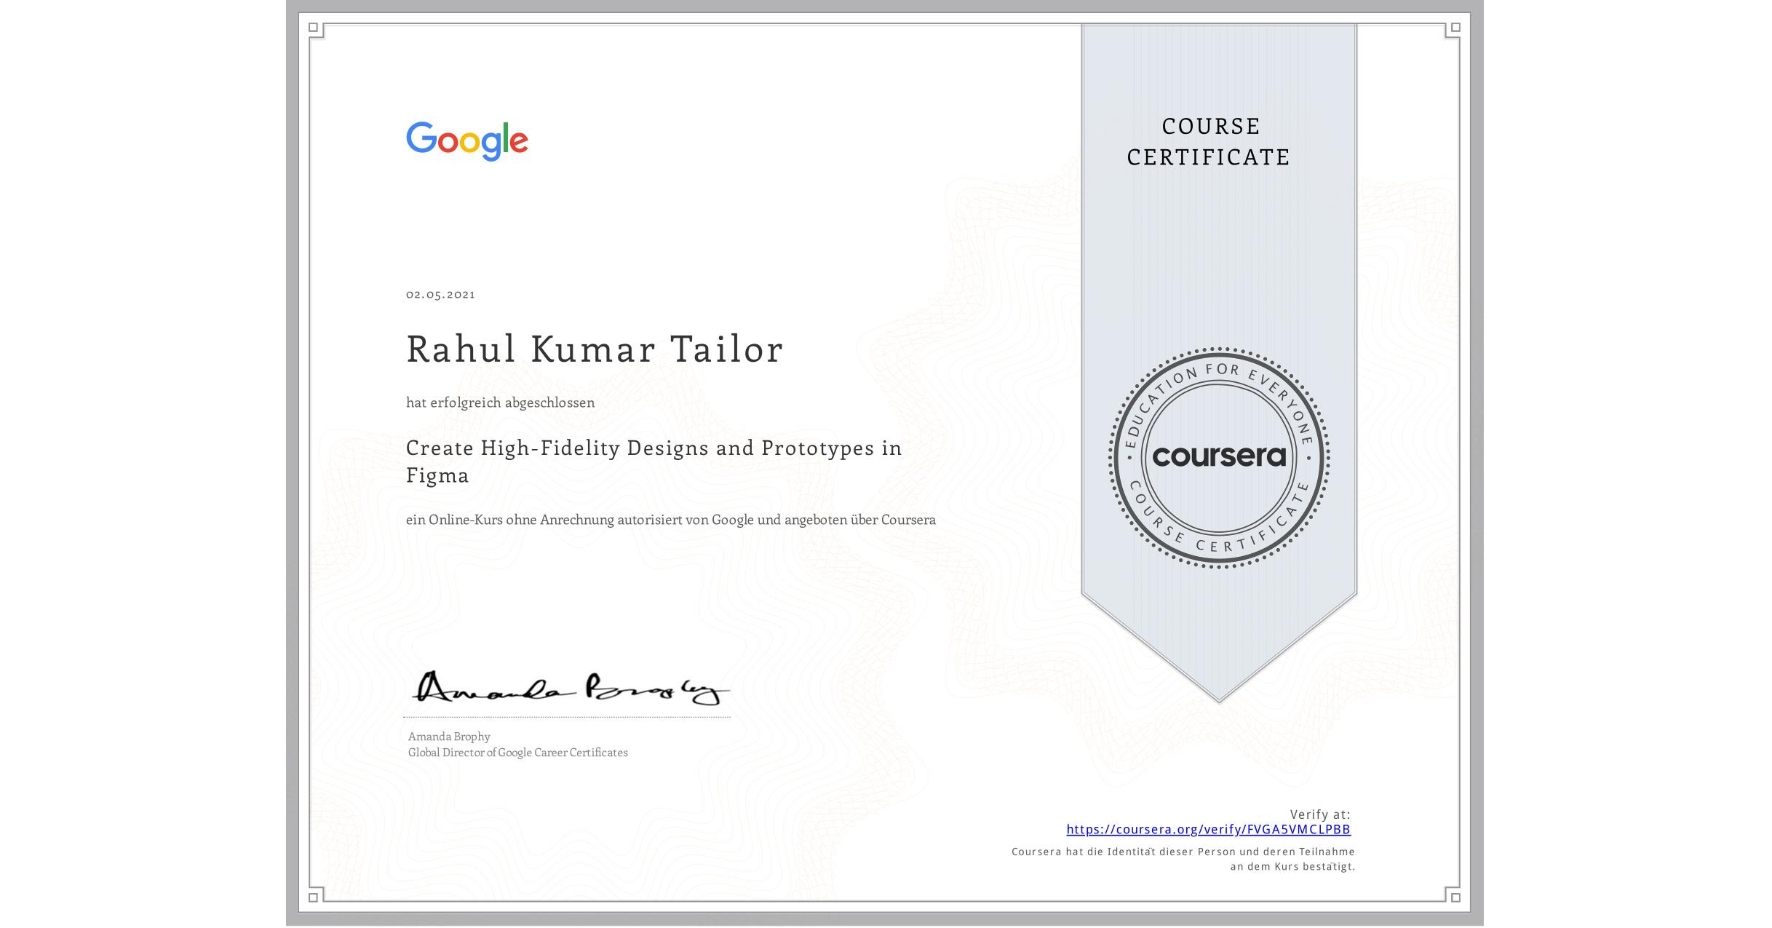 View certificate for Rahul Kumar Tailor, Create High-Fidelity Designs and Prototypes in Figma, an online non-credit course authorized by Google and offered through Coursera